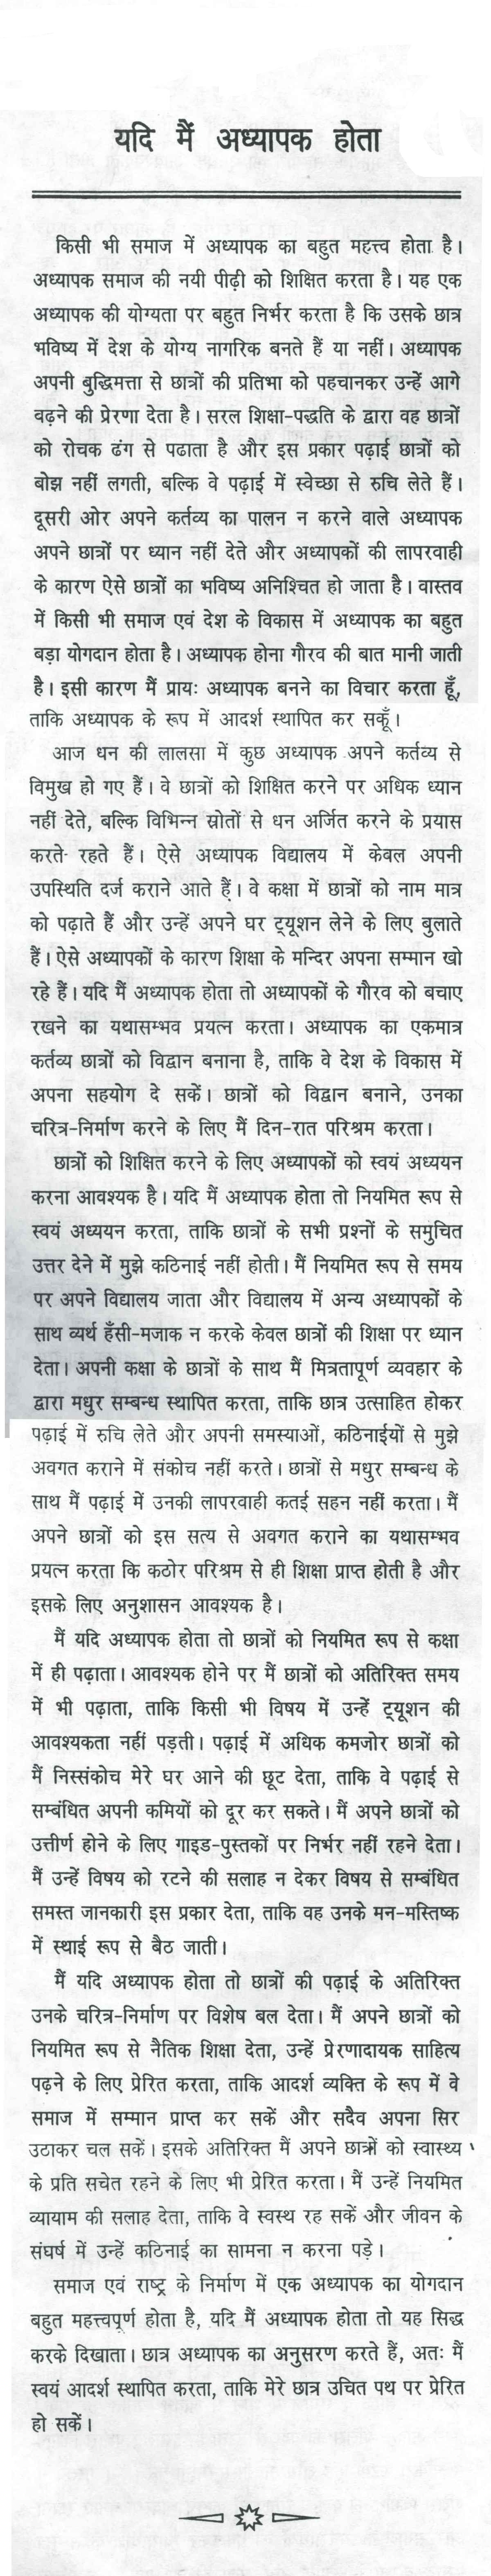 015 Why I Want To Teacher Essay Example 10037 Thumb Amazing Be A Free Sample In Hindi Full